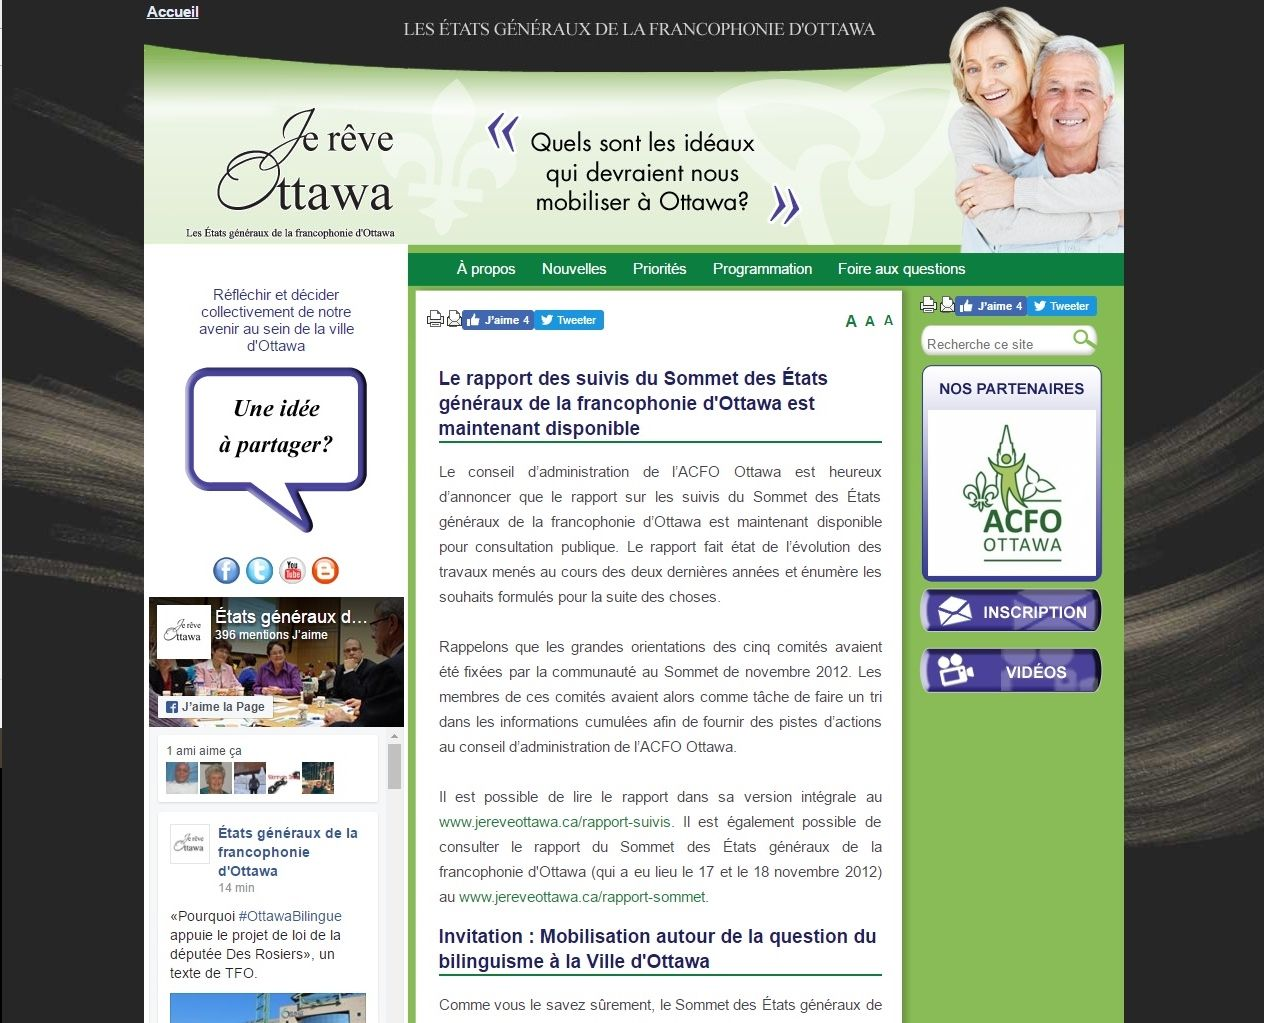 """Web page screen capture. Main page of a website, including tabs for navigation, assorted information, photos, search tool, and feedback element. Arranged in three columns, on a green background, under a heading with the slogan """"Je rêve Ottawa."""""""